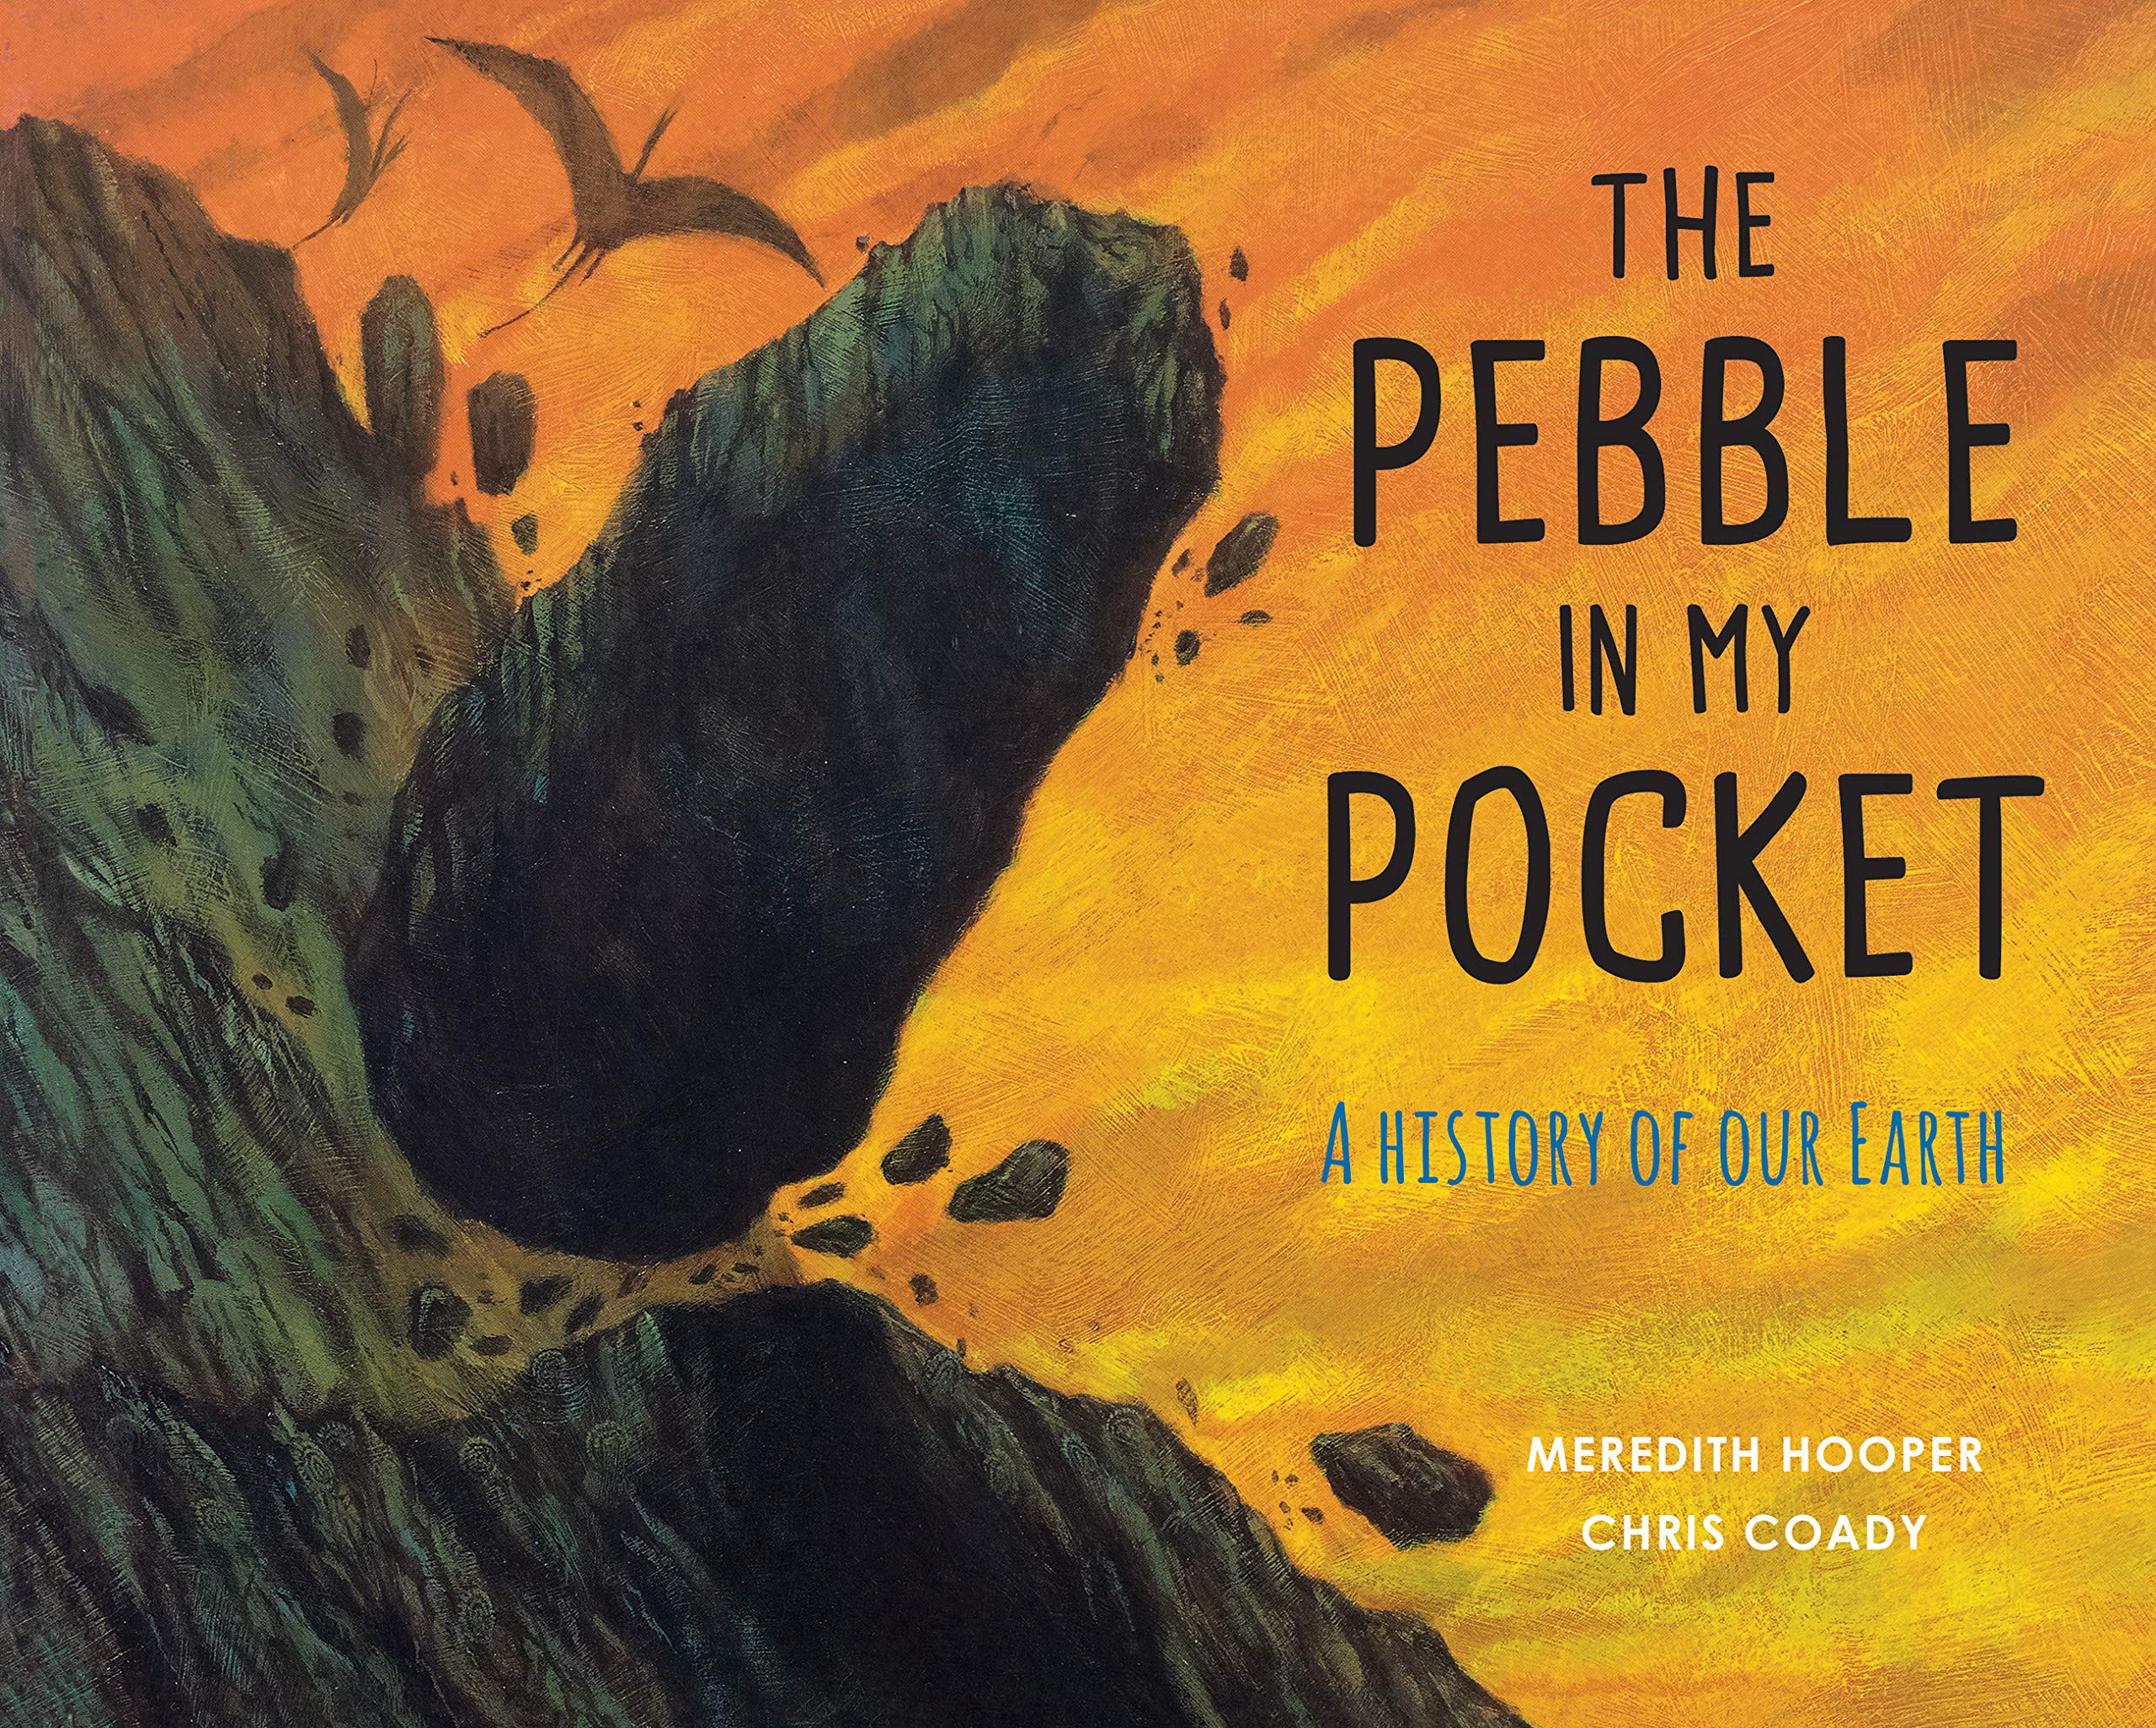 The Pebble in My Pocket: A History of Our Earth: Amazon.co.uk: Hooper, Meredith, Coady, Chris: Books